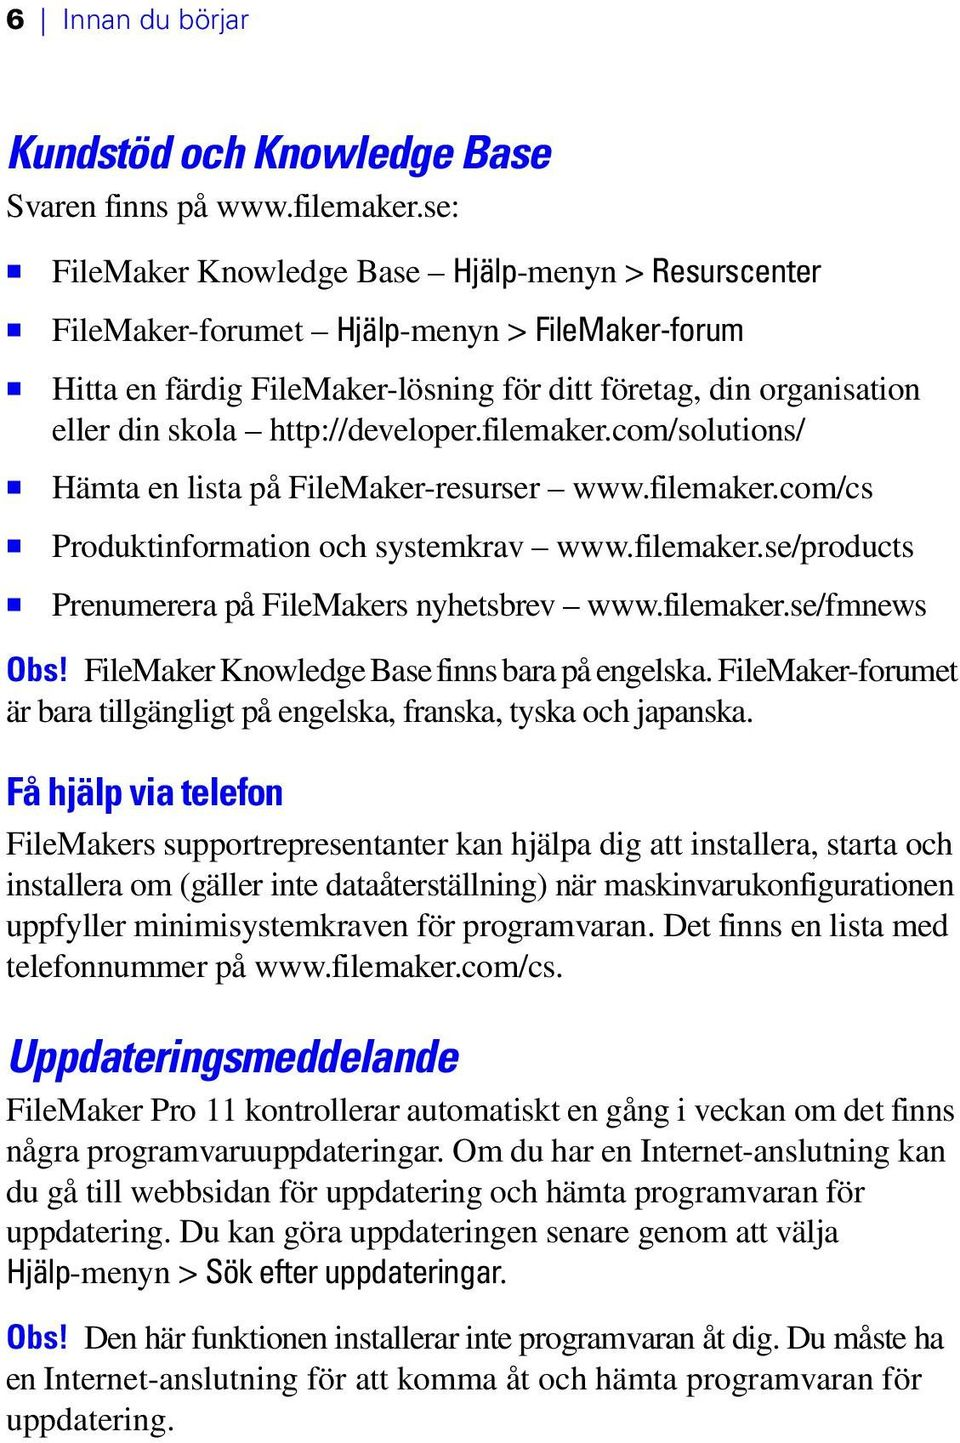 http://developer.filemaker.com/solutions/ 1 Hämta en lista på FileMaker-resurser www.filemaker.com/cs 1 Produktinformation och systemkrav www.filemaker.se/products 1 Prenumerera på FileMakers nyhetsbrev www.